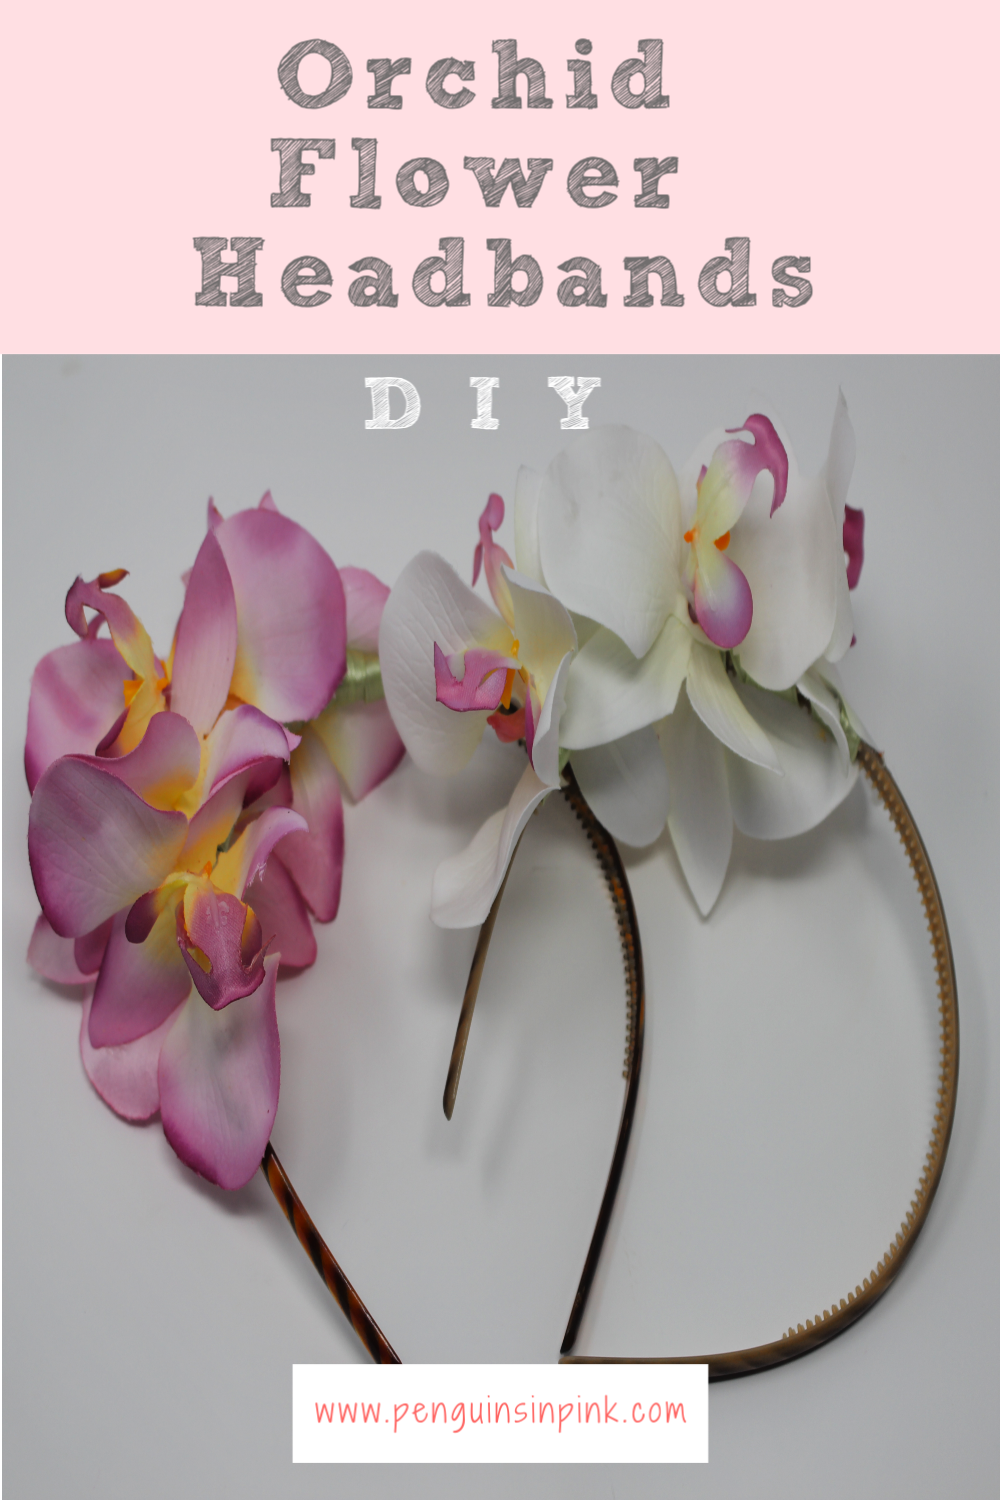 These DIY Orchid Flower Headbands are super adorable and fairly easy to make. They are a fun way to sassy up a plain headband.